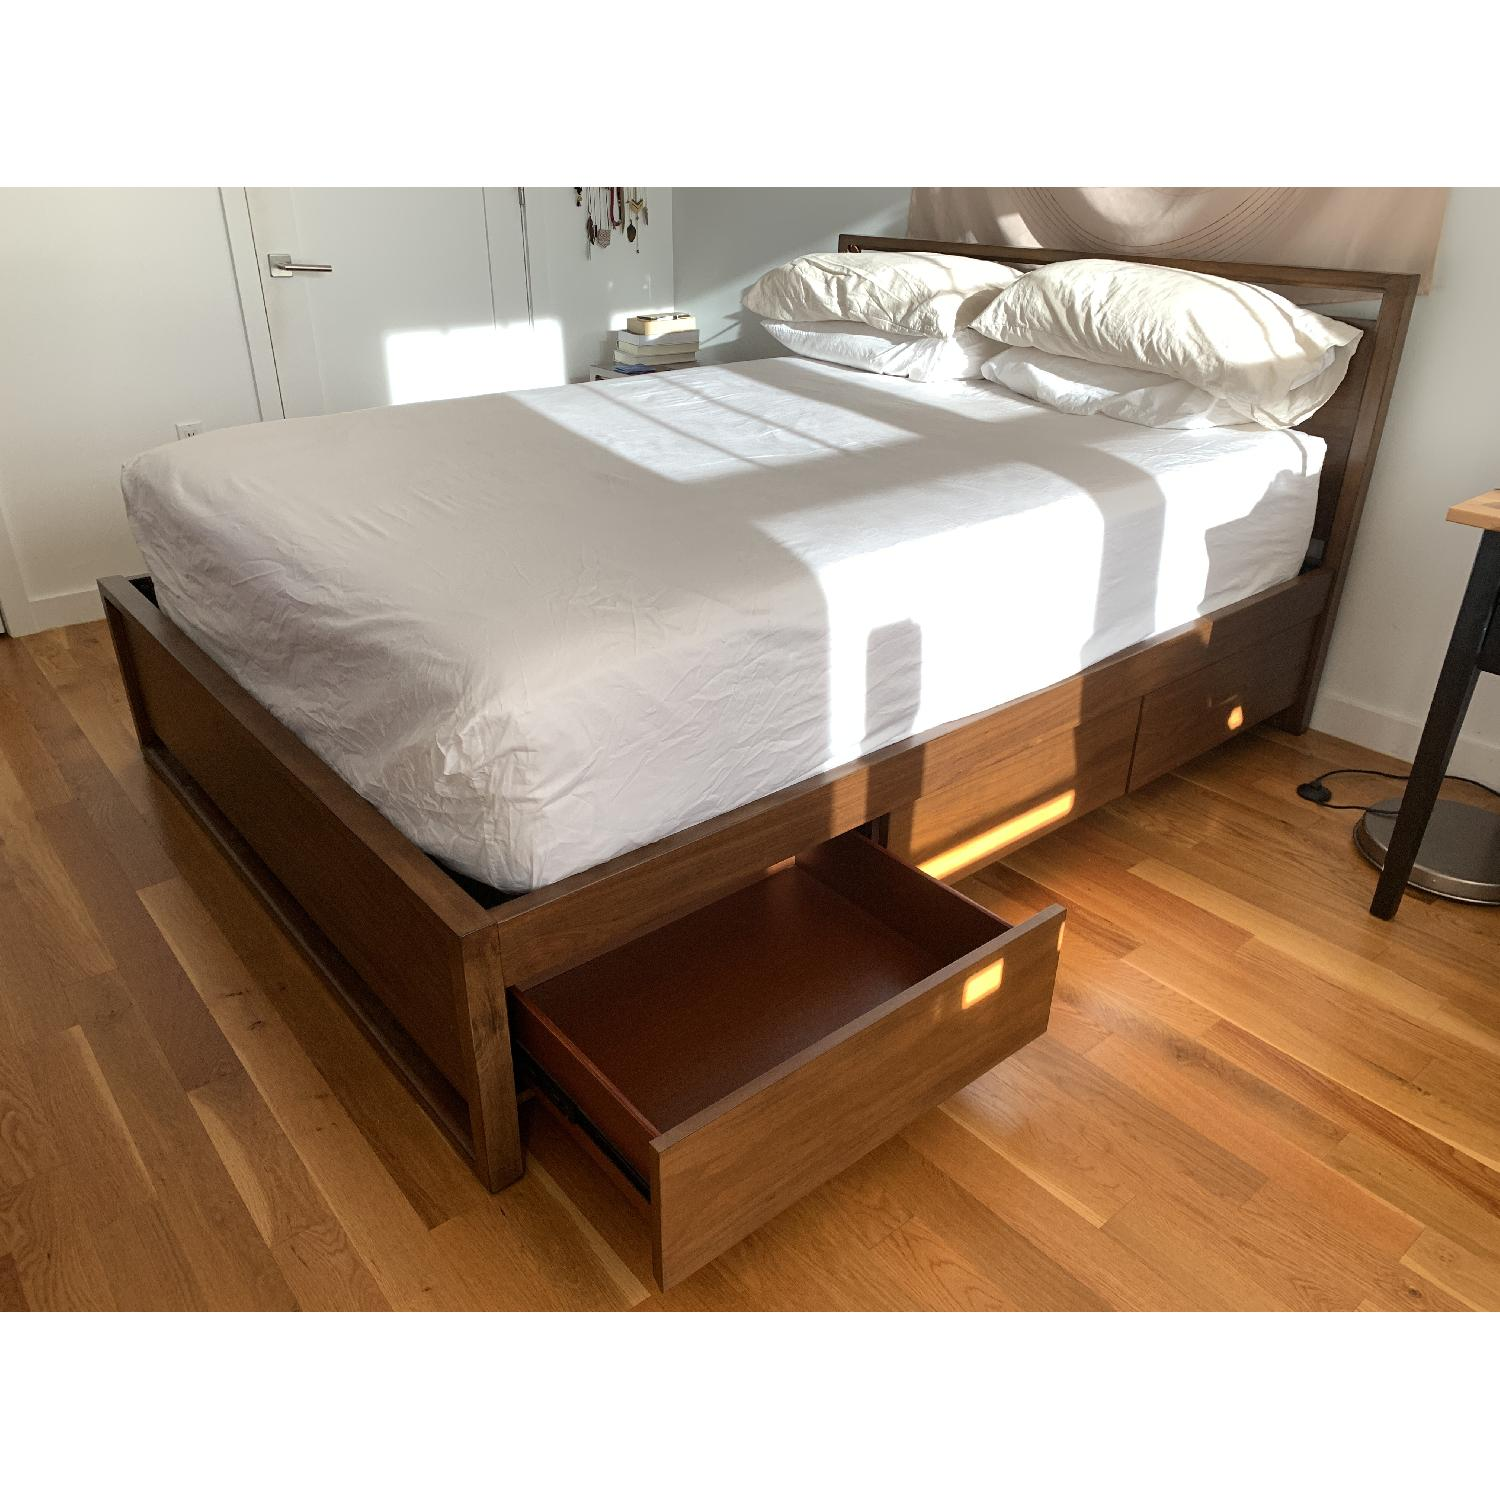 Raymour & Flanigan Aversa Queen 2-Sides Storage Bed - image-2